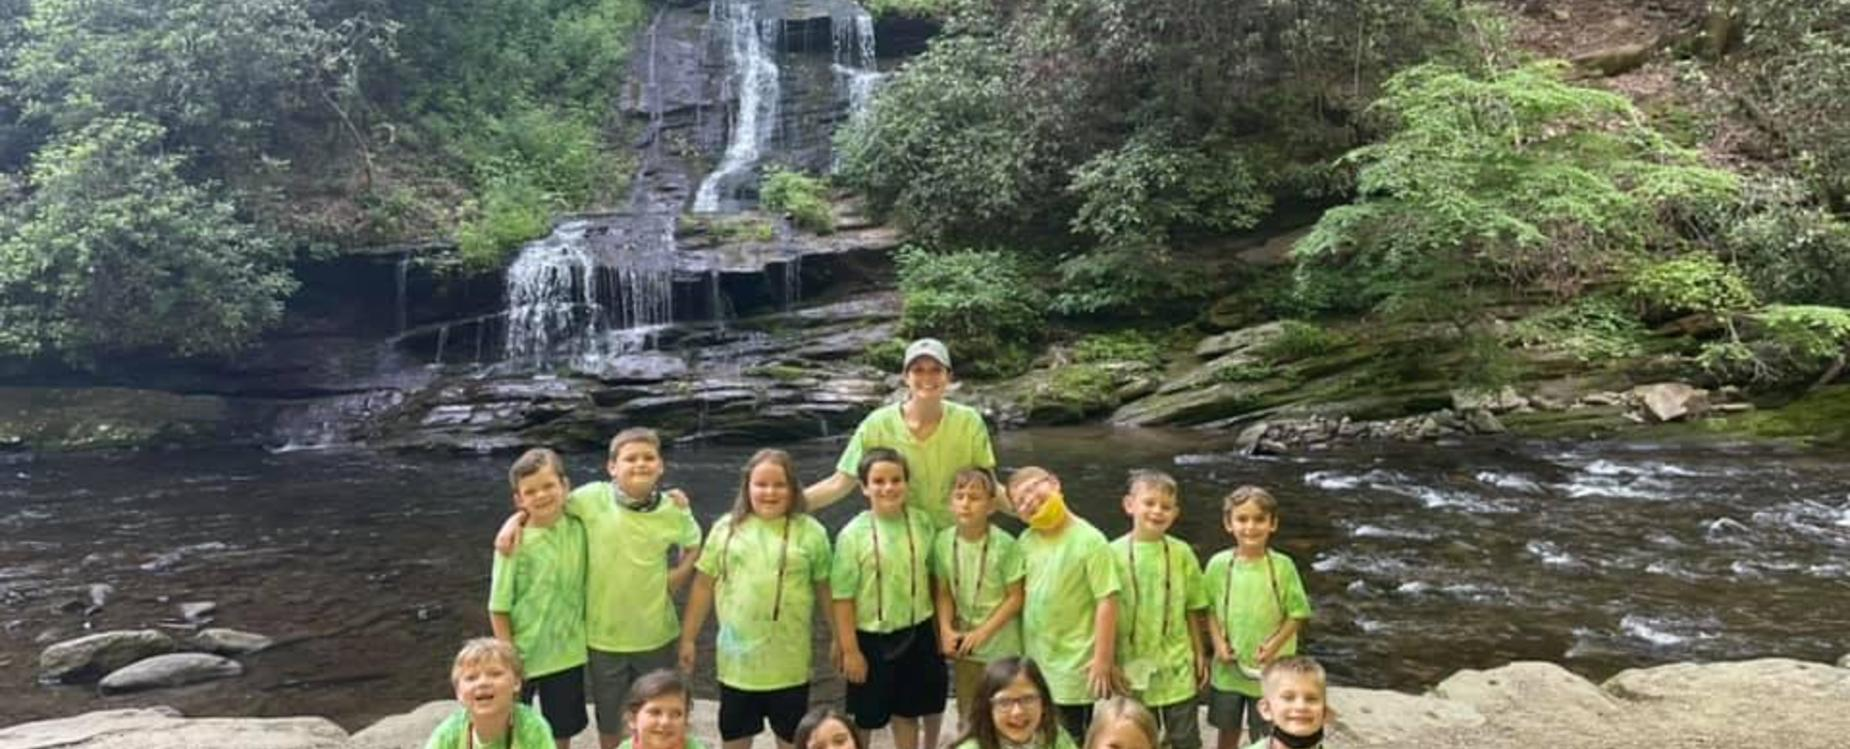 Class in front of waterfall